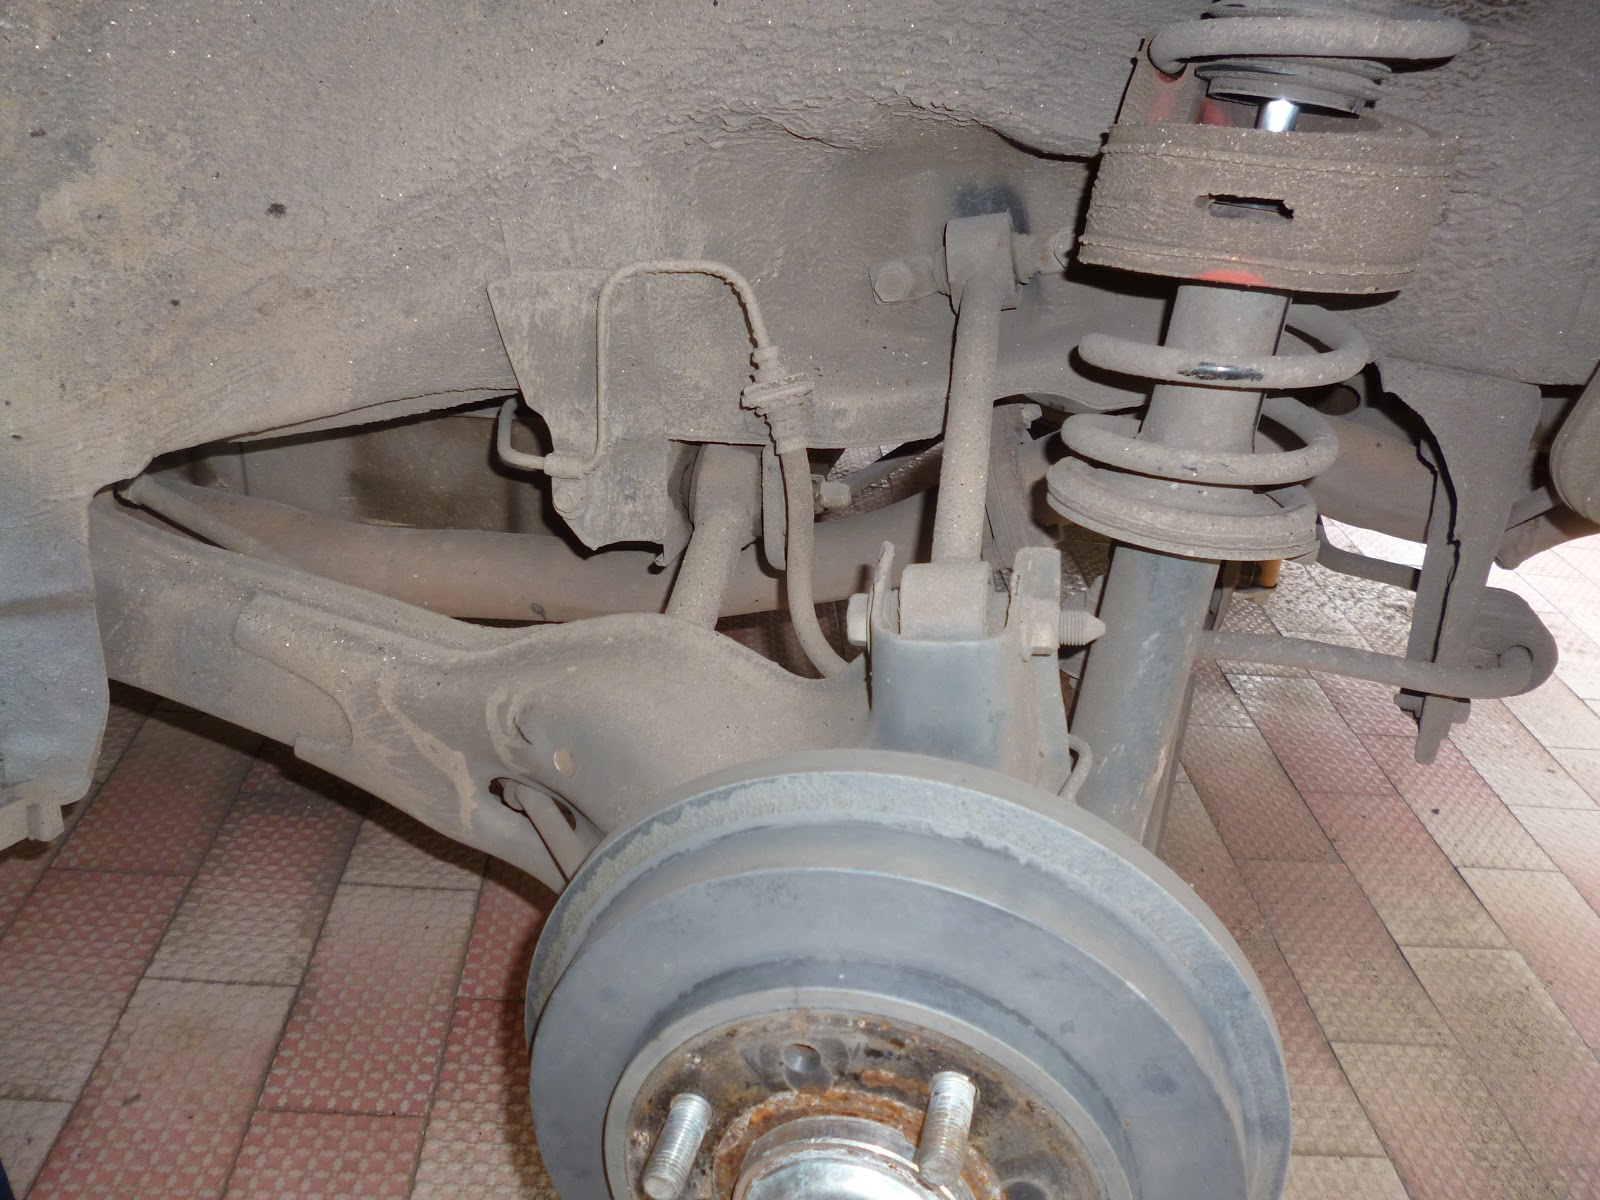 Review 42055 Bucket Wheel Excavator as well 698769 1999 Ls400 Control Arm together with Watch together with Focus Rs Mk1 Powerflex Rear Track Control Arm Inner Bush Pair Pfr19 808 73467 P in addition 2004 Bmw 330i Sedan With Zhp Performance Package. on rear lower control arm